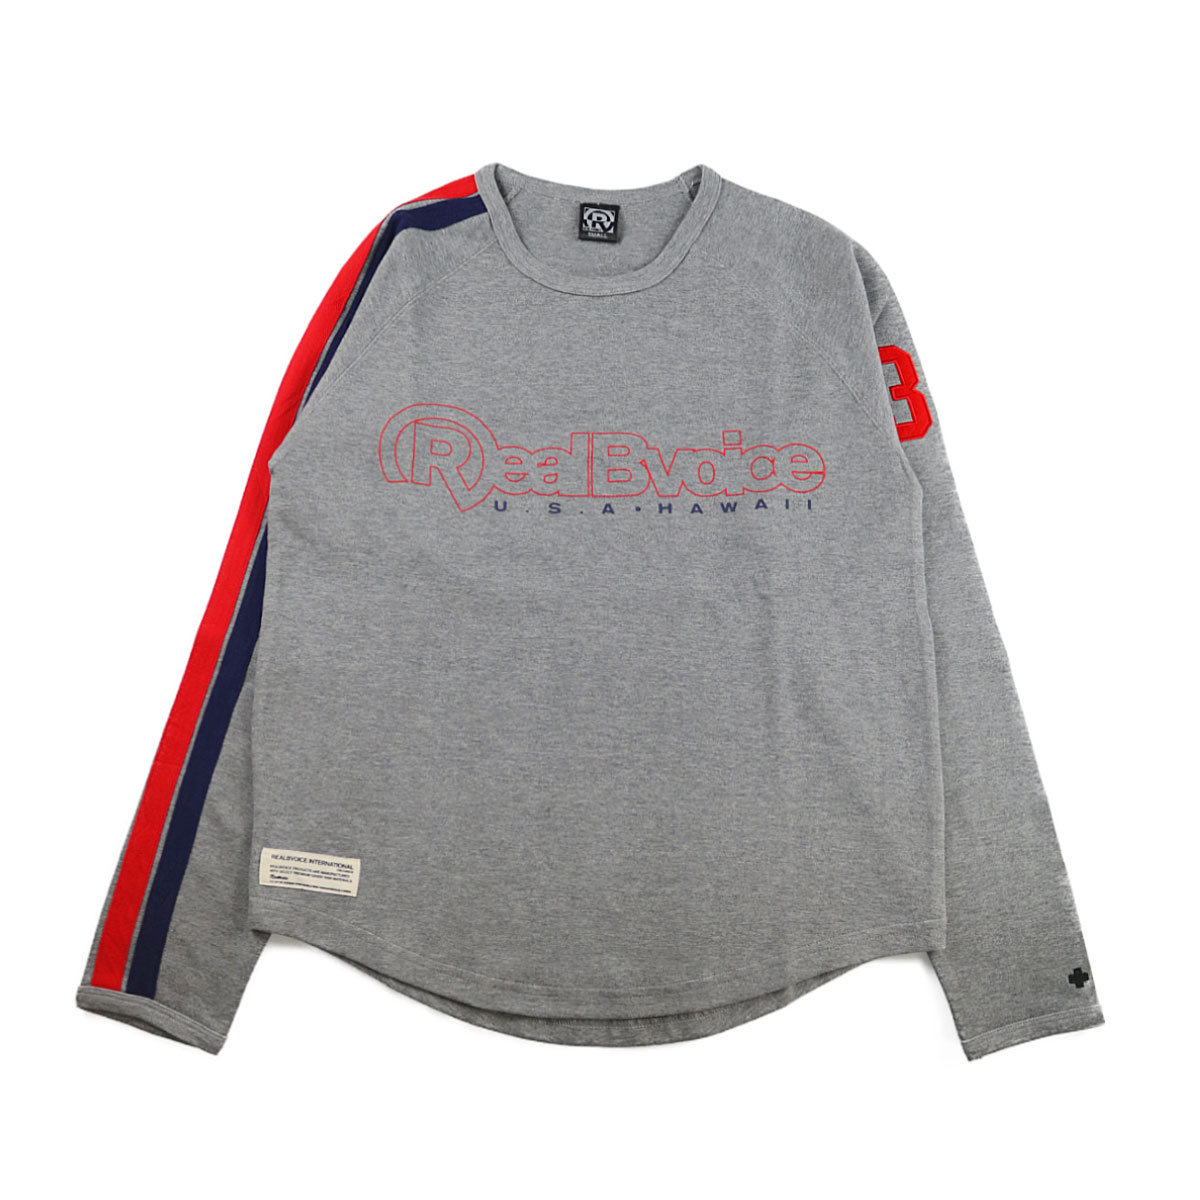 SUPER HEAVY RBV LONG T-SHIRT